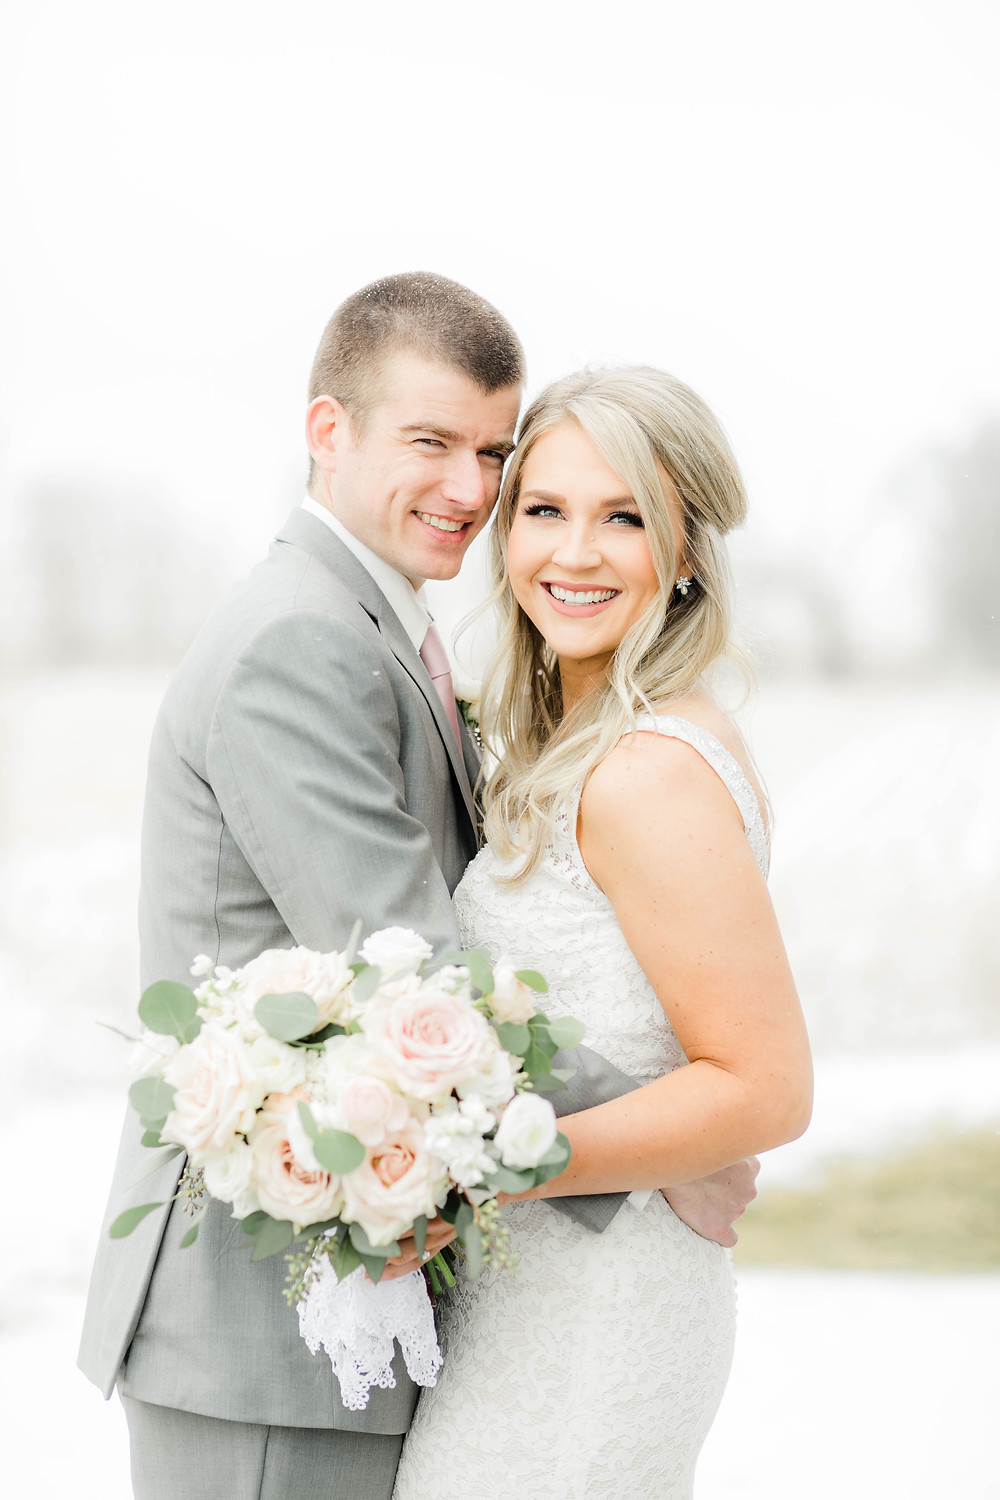 Bride and groom at Ashton Hill Farm with bridal bouquet by wedding florist Studio Bloom Iowa